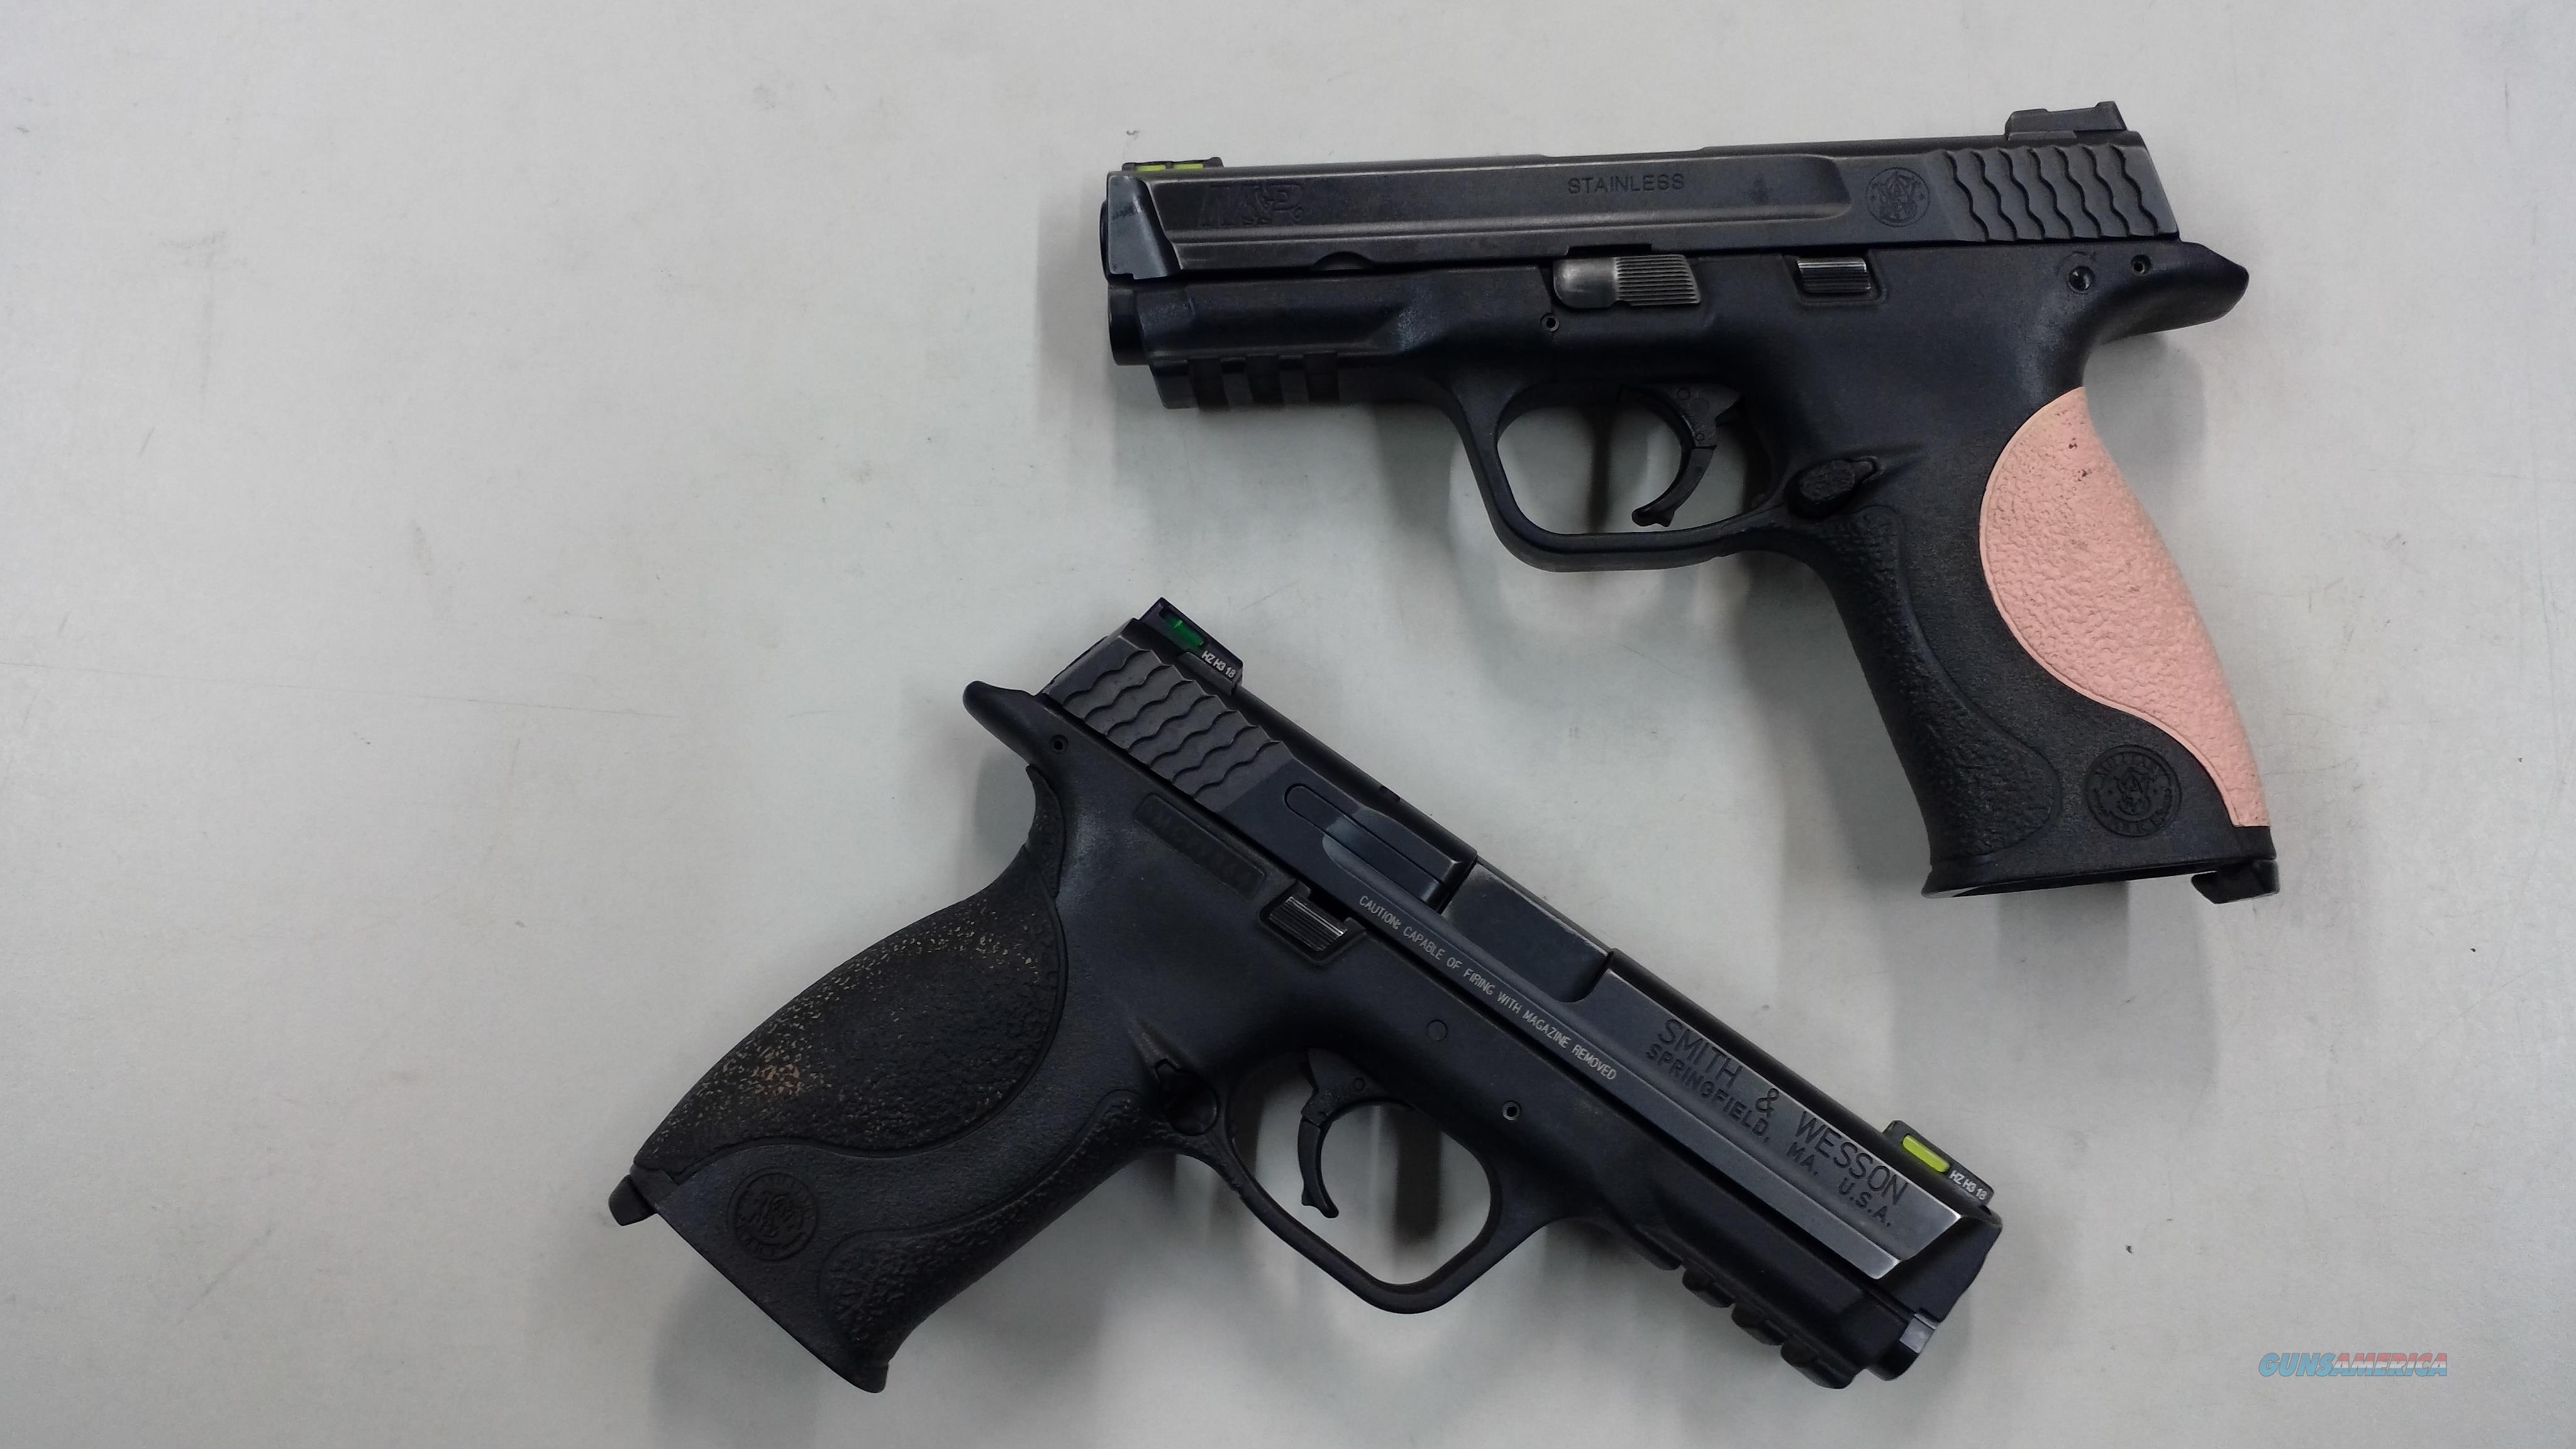 Smith & Wesson M&P 9mm  Guns > Pistols > Smith & Wesson Pistols - Autos > Polymer Frame